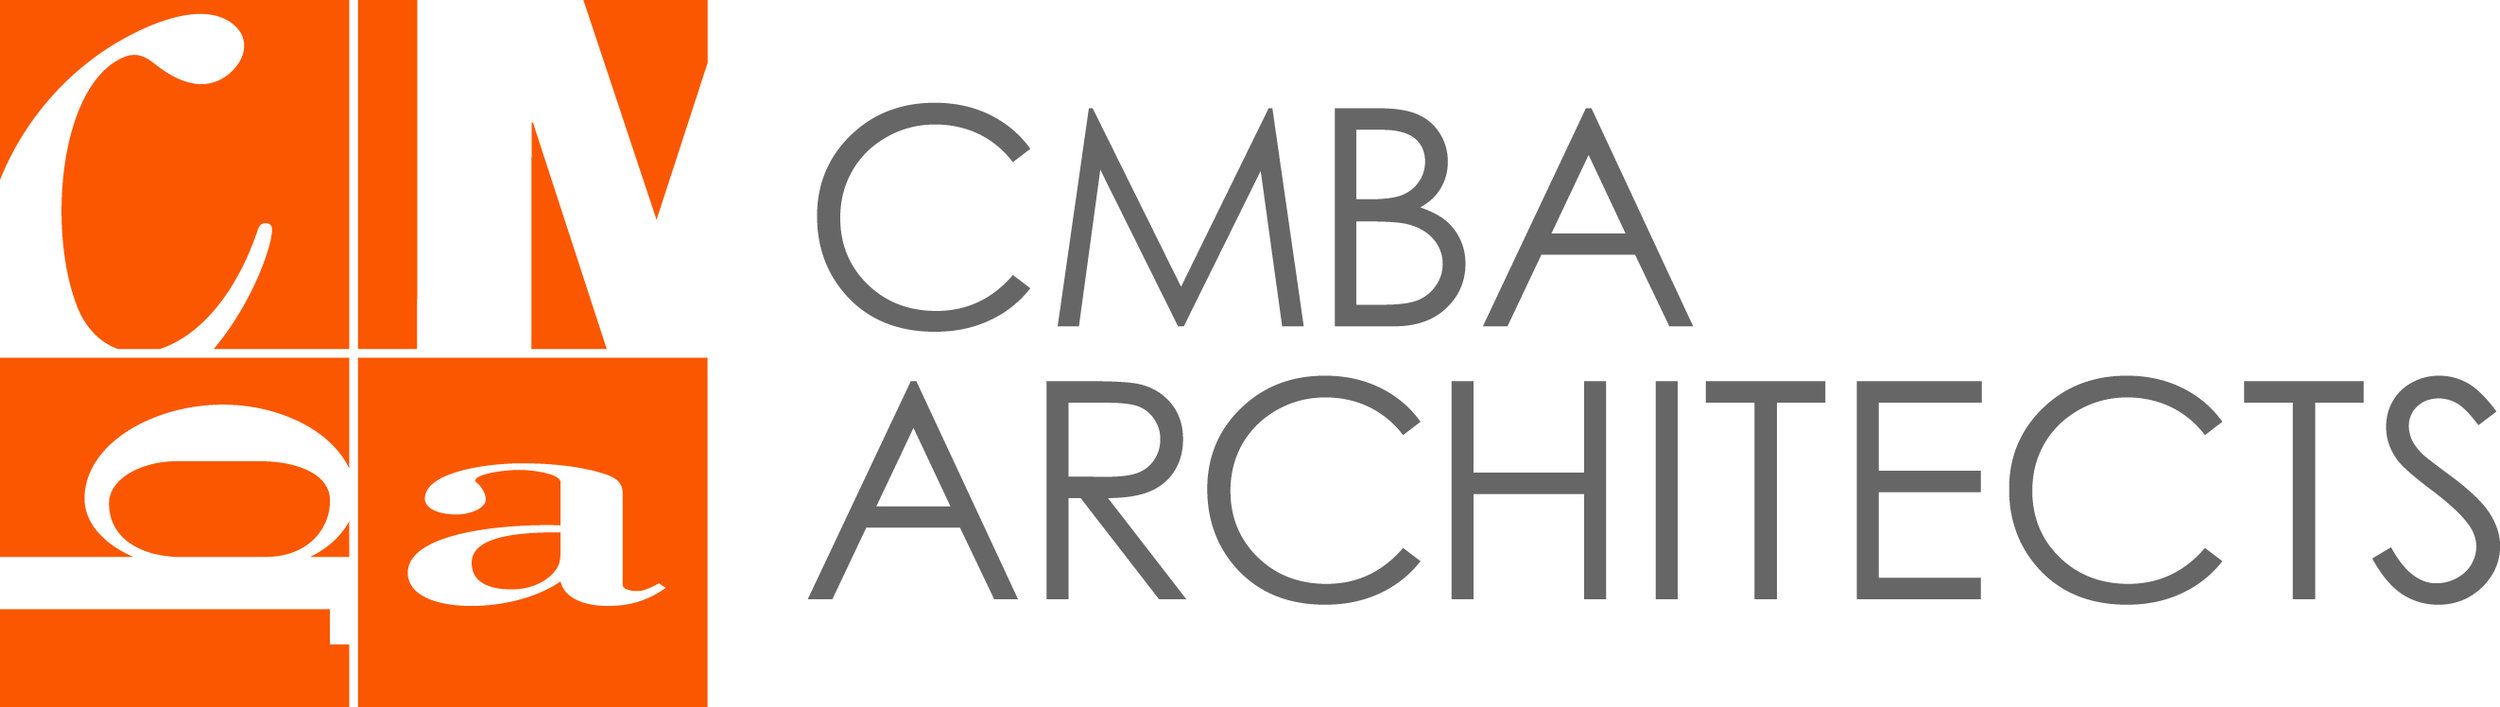 CMBA-Architects.jpg